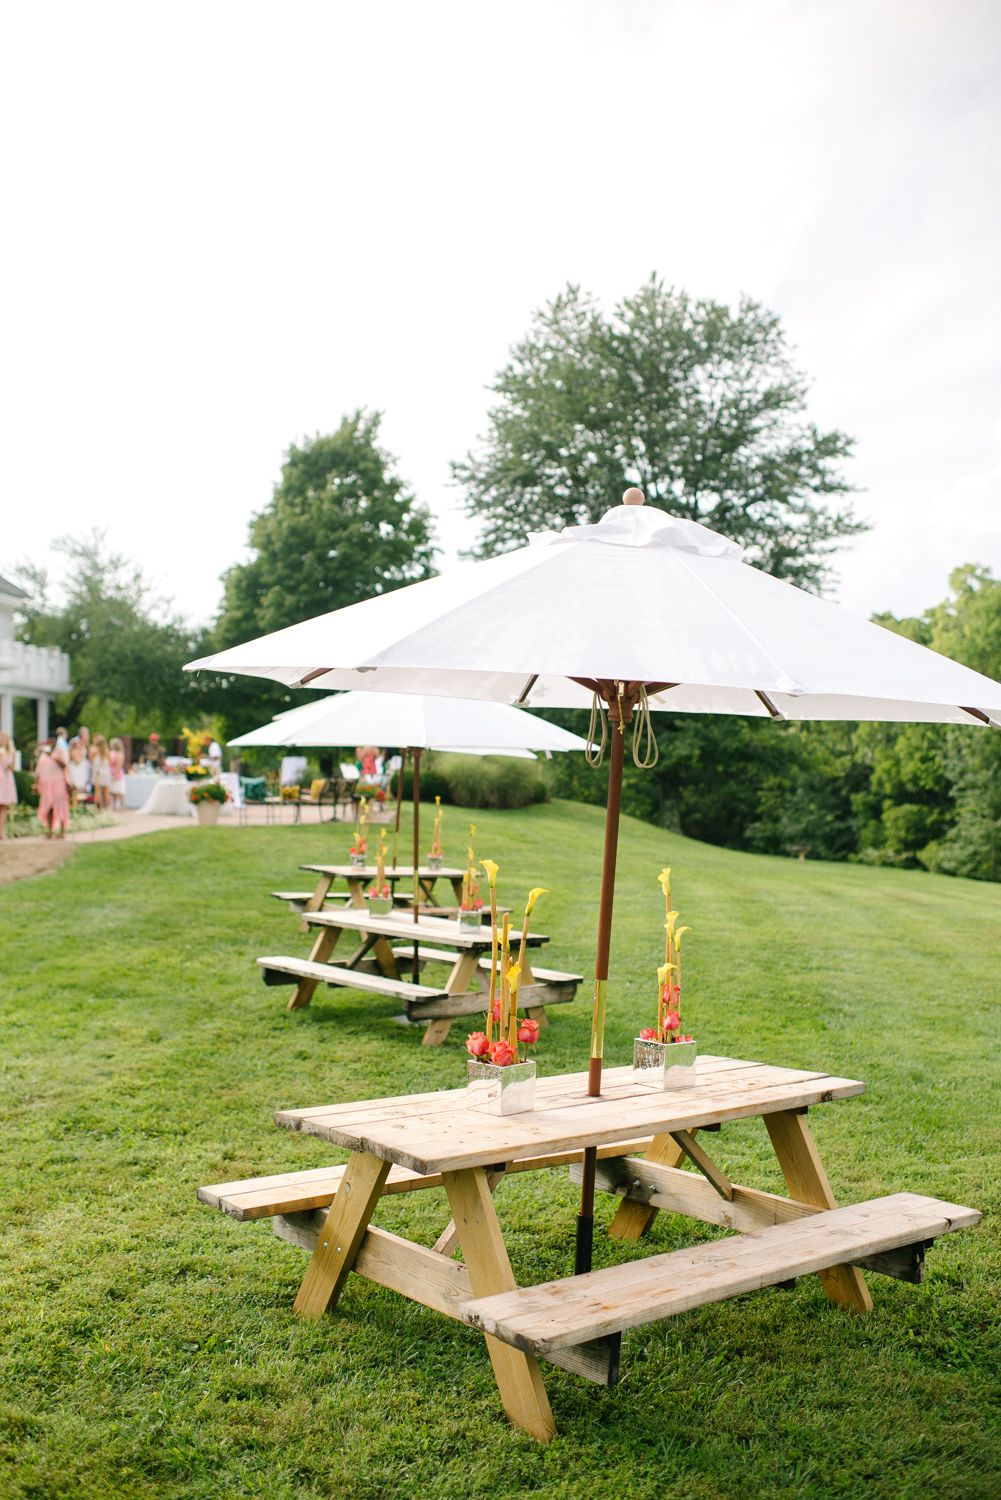 One Way To Keep Your Wedding Reception Casual Add Picnic Tables